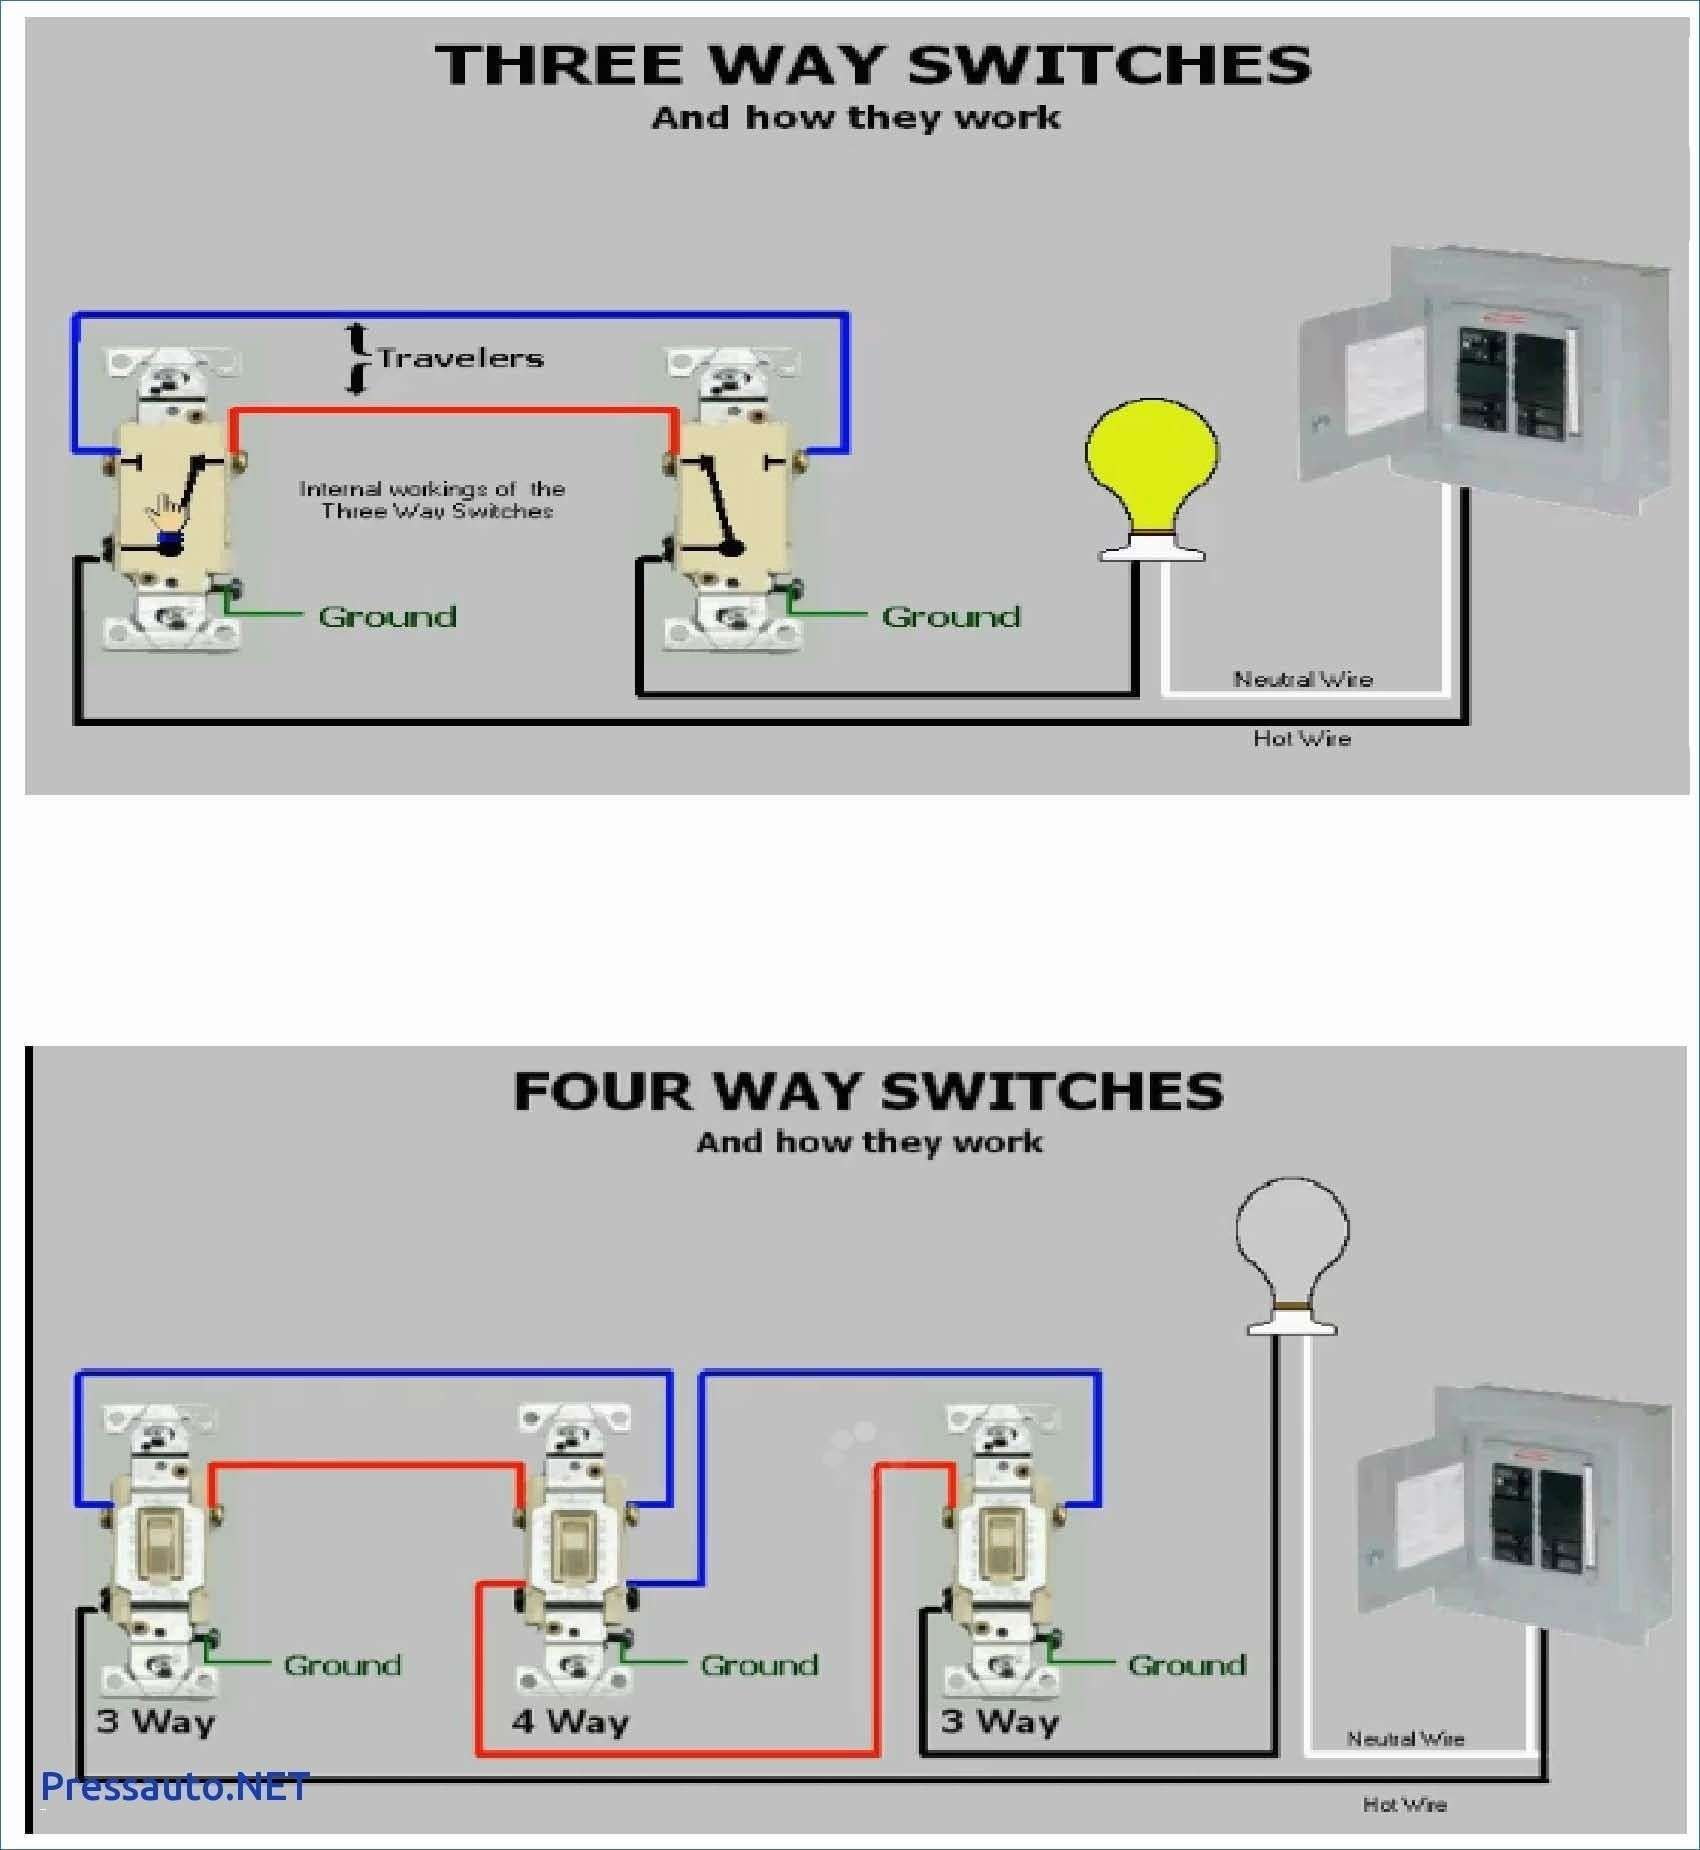 4 way switch wiring diagram for a circular saw wiring diagram 3 way switch three way switch  wiring diagram 3 way switch three way